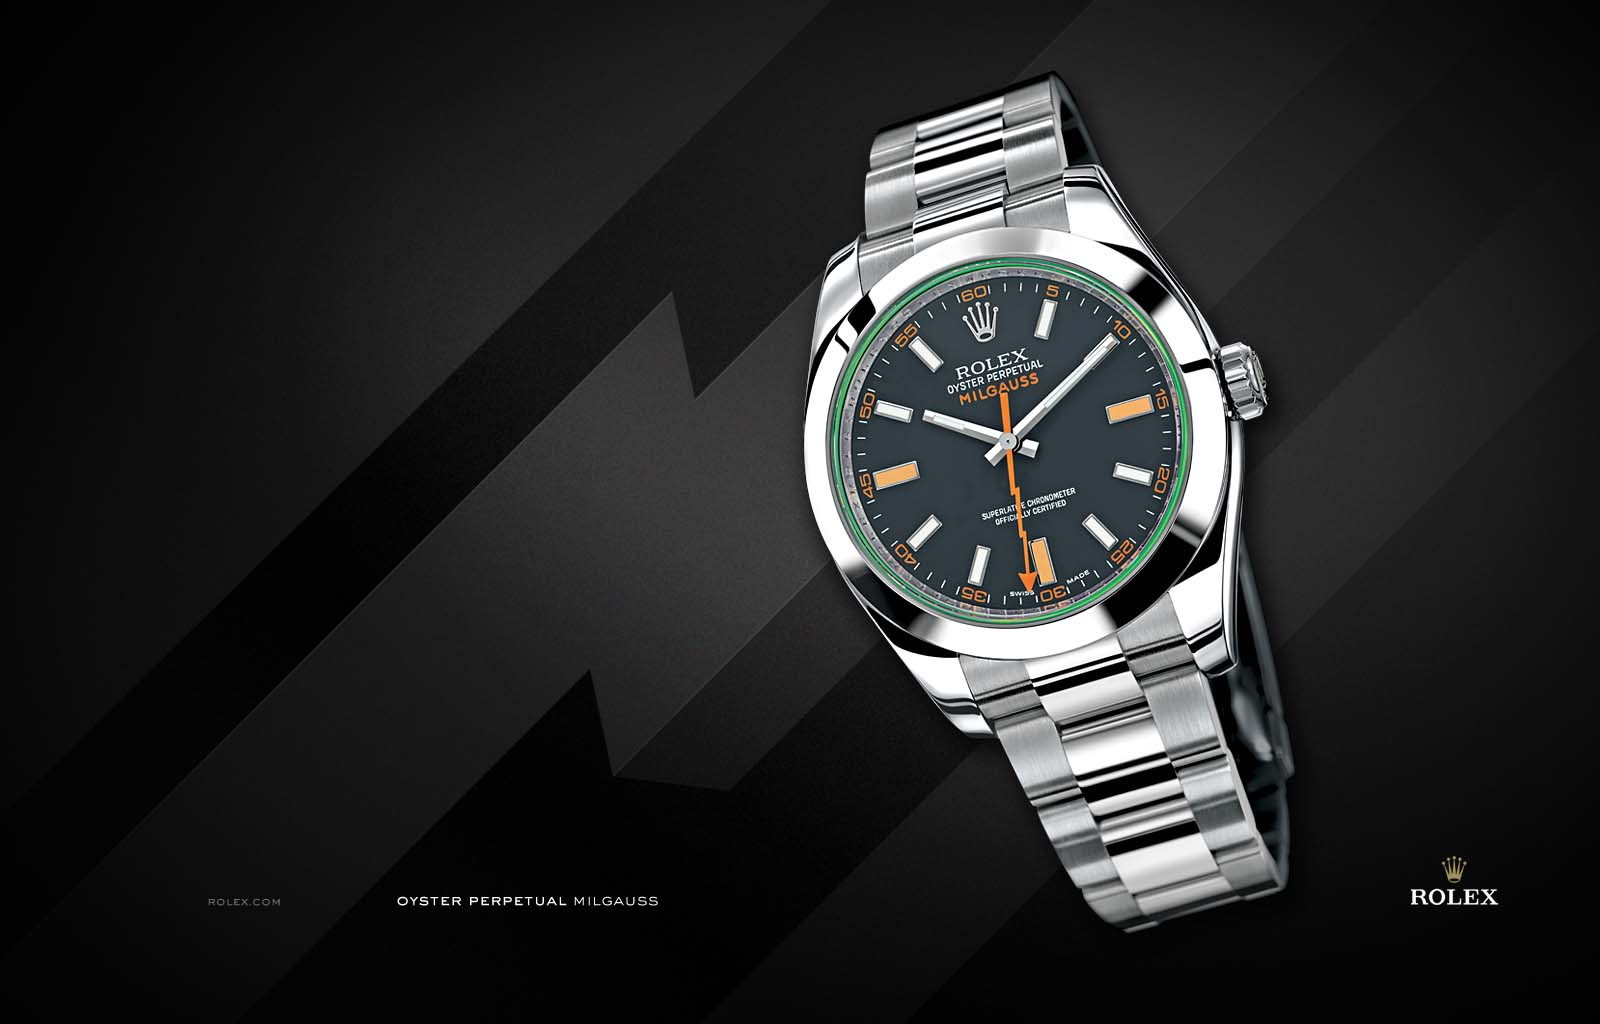 A MILLION OF WALLPAPERS.COM: ROLEX WATCHES WALLPAPERS